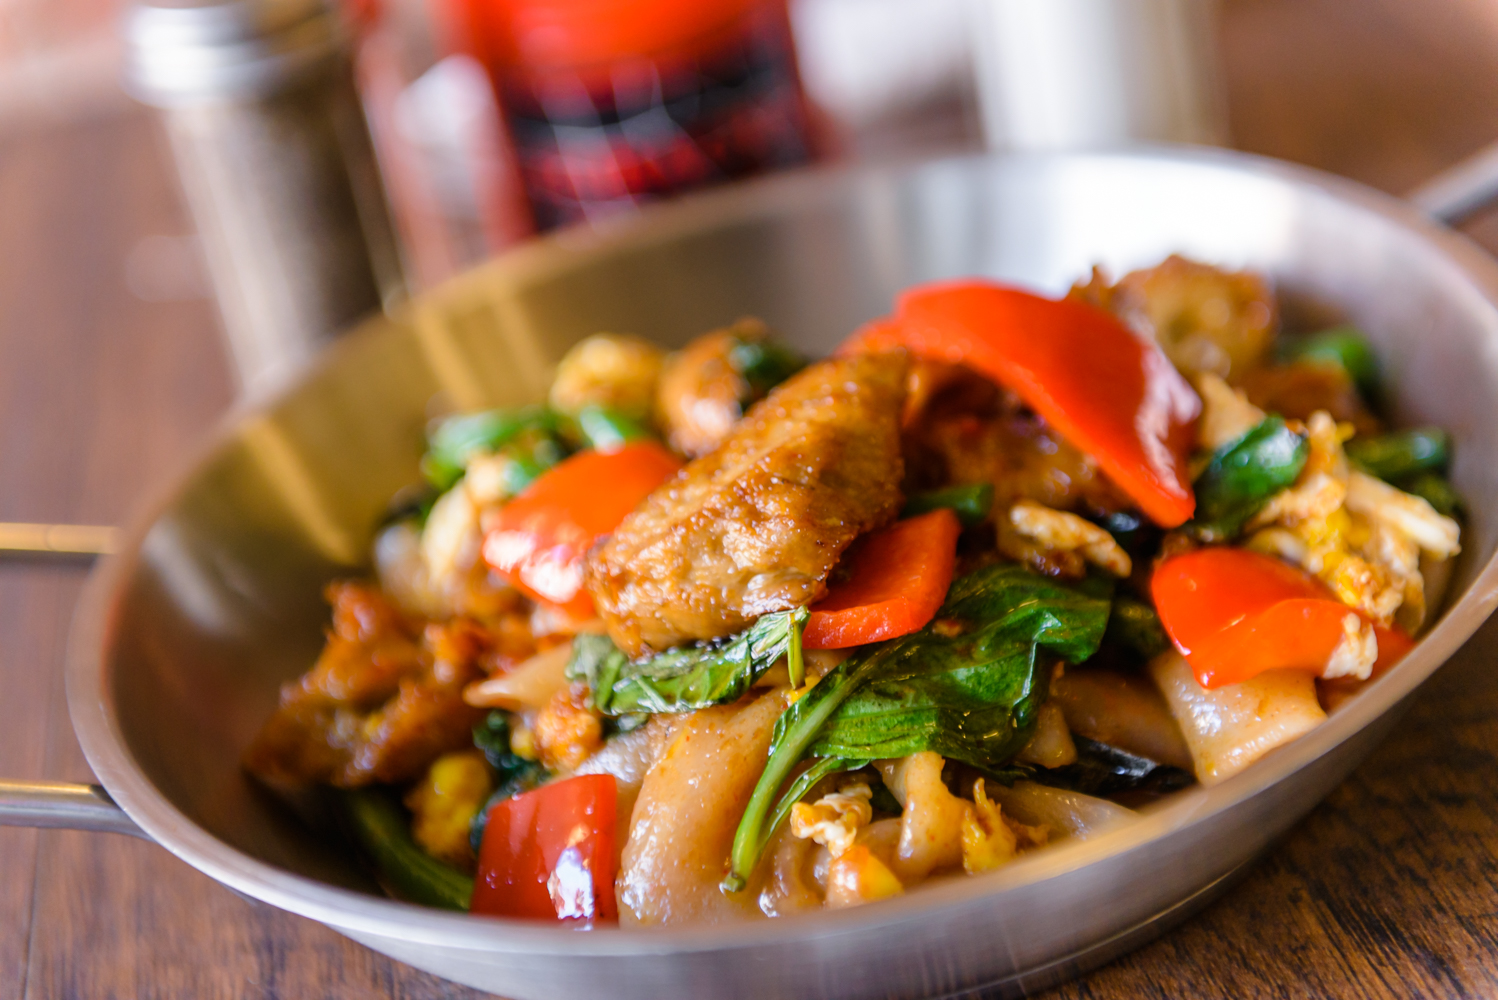 Sauteed Drunken Noodles served with flat noodles, spicy chili paste, basil, onion, bell pepper, and string beans